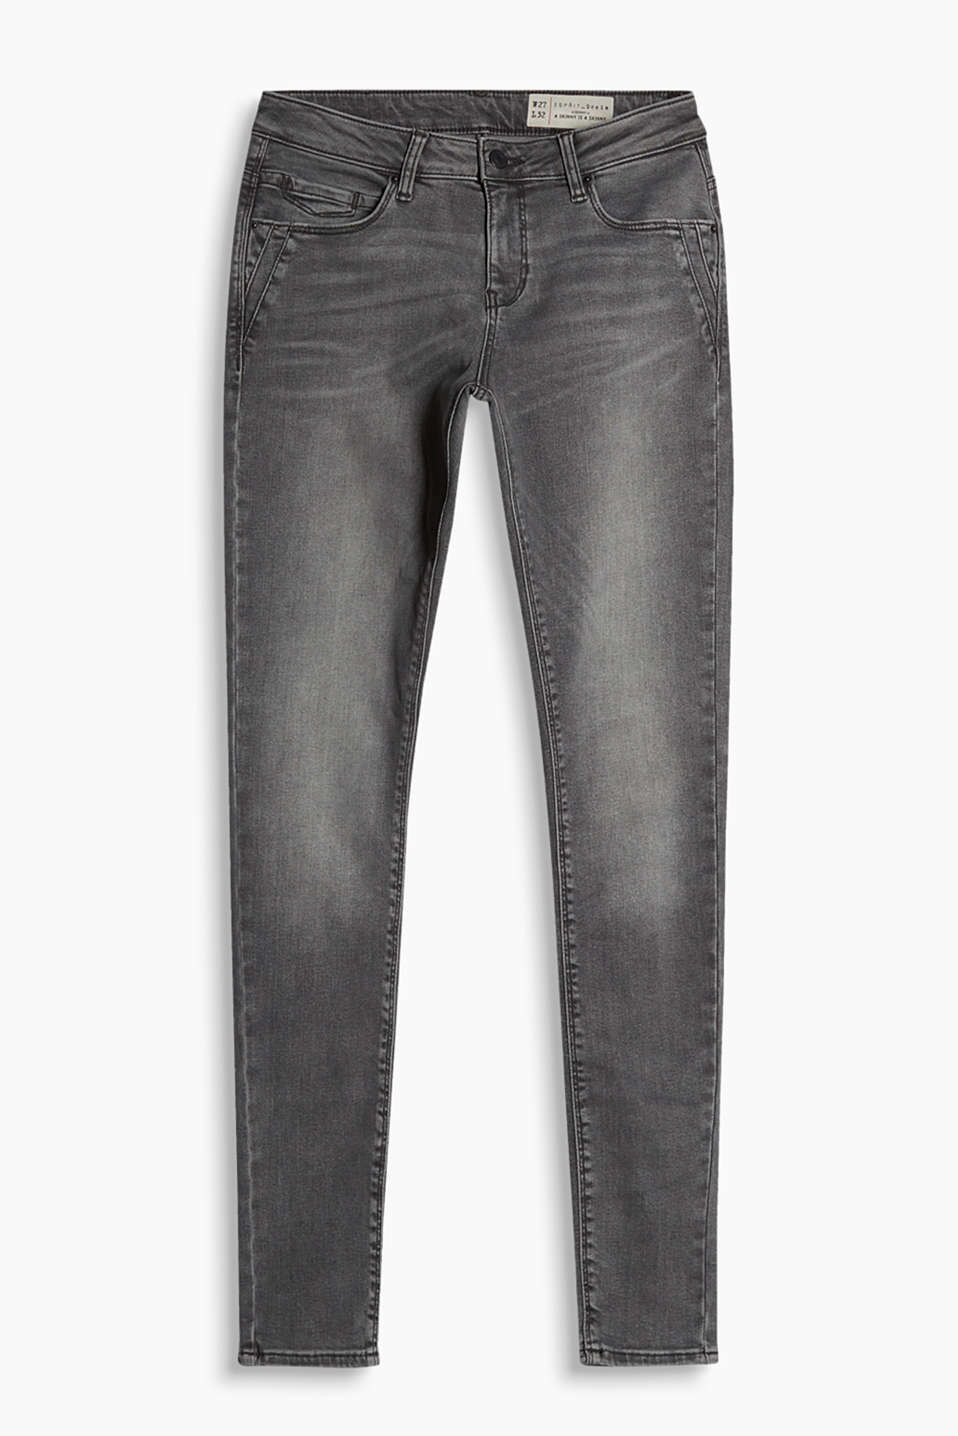 Skin-tight and comfortable: grey skinny jeans with a high percentage of stretch